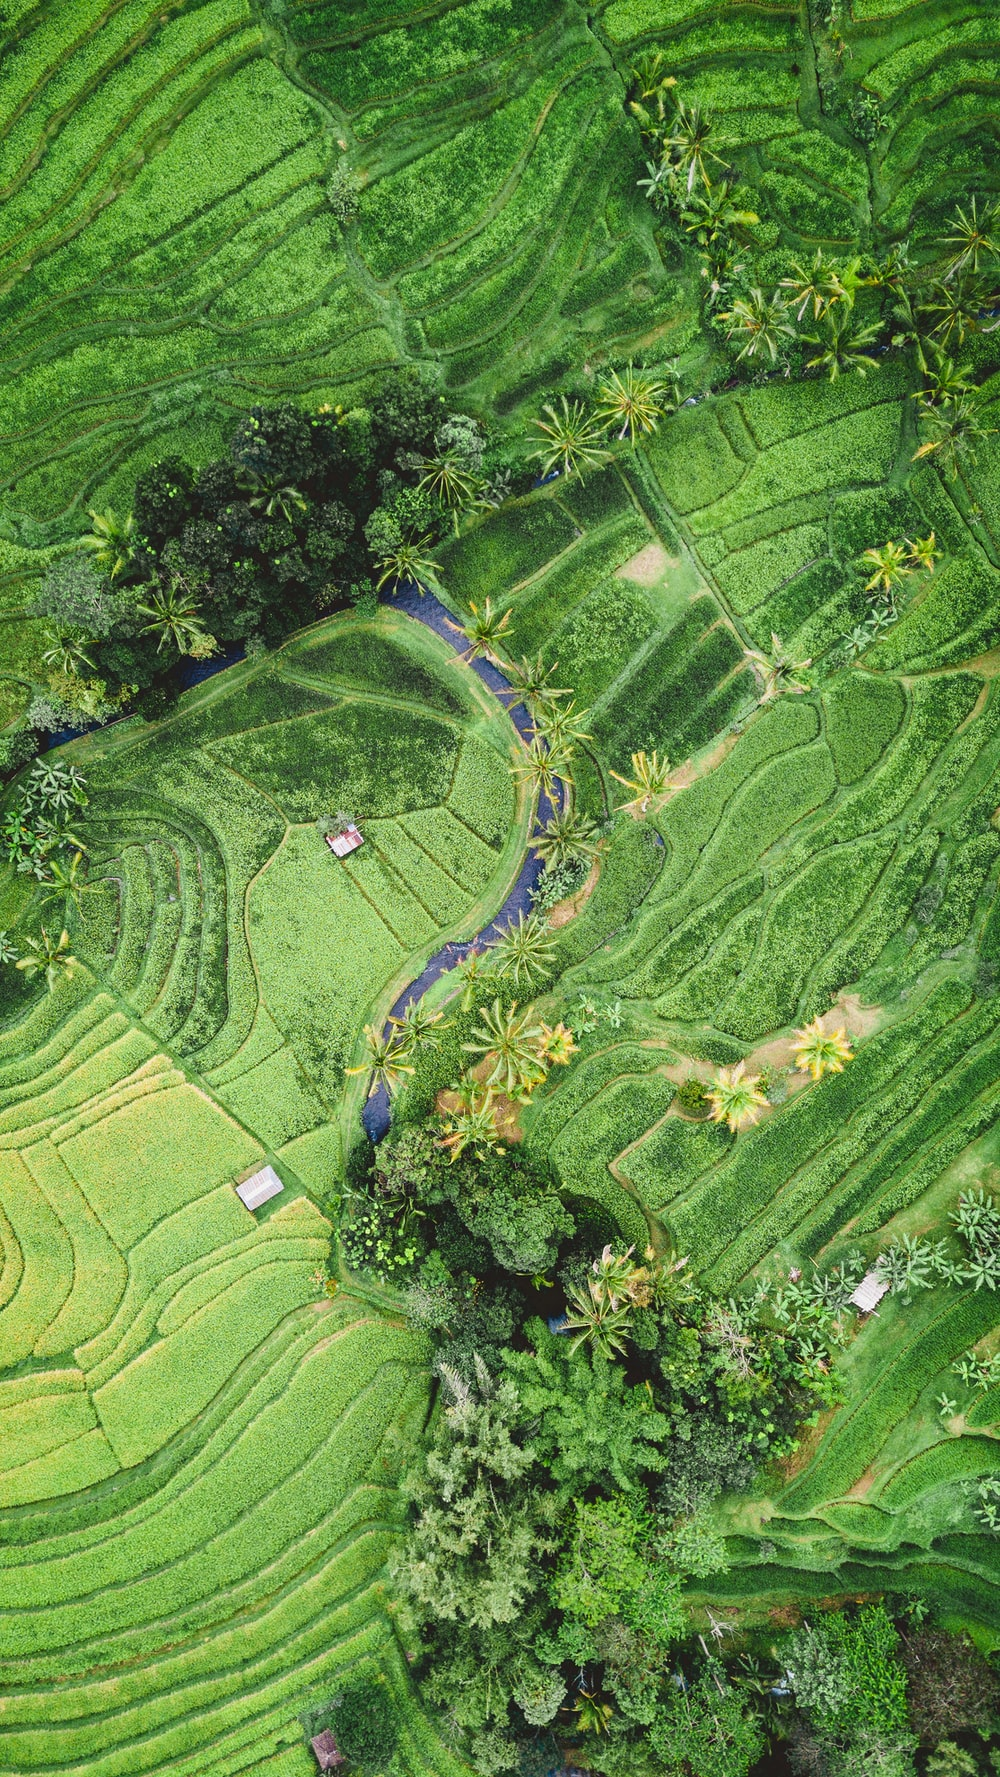 green fields and trees in aerial photography